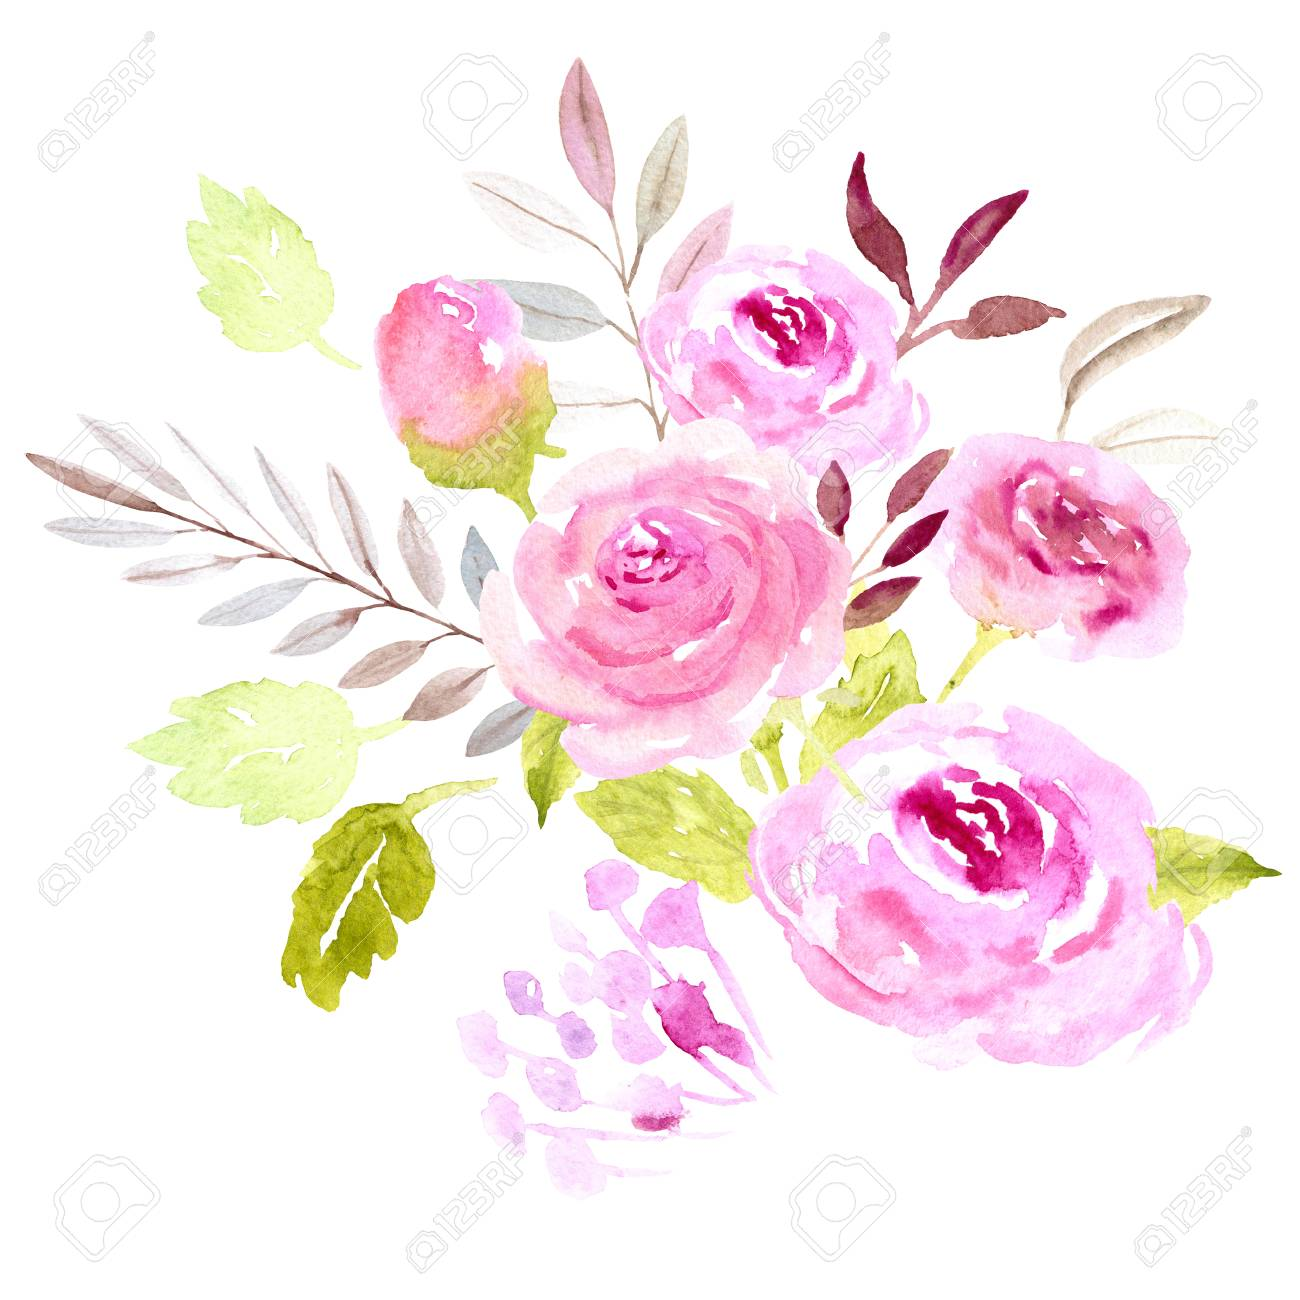 Hand Painted Watercolor Bouquet Illustration Rose Pink Flowers And